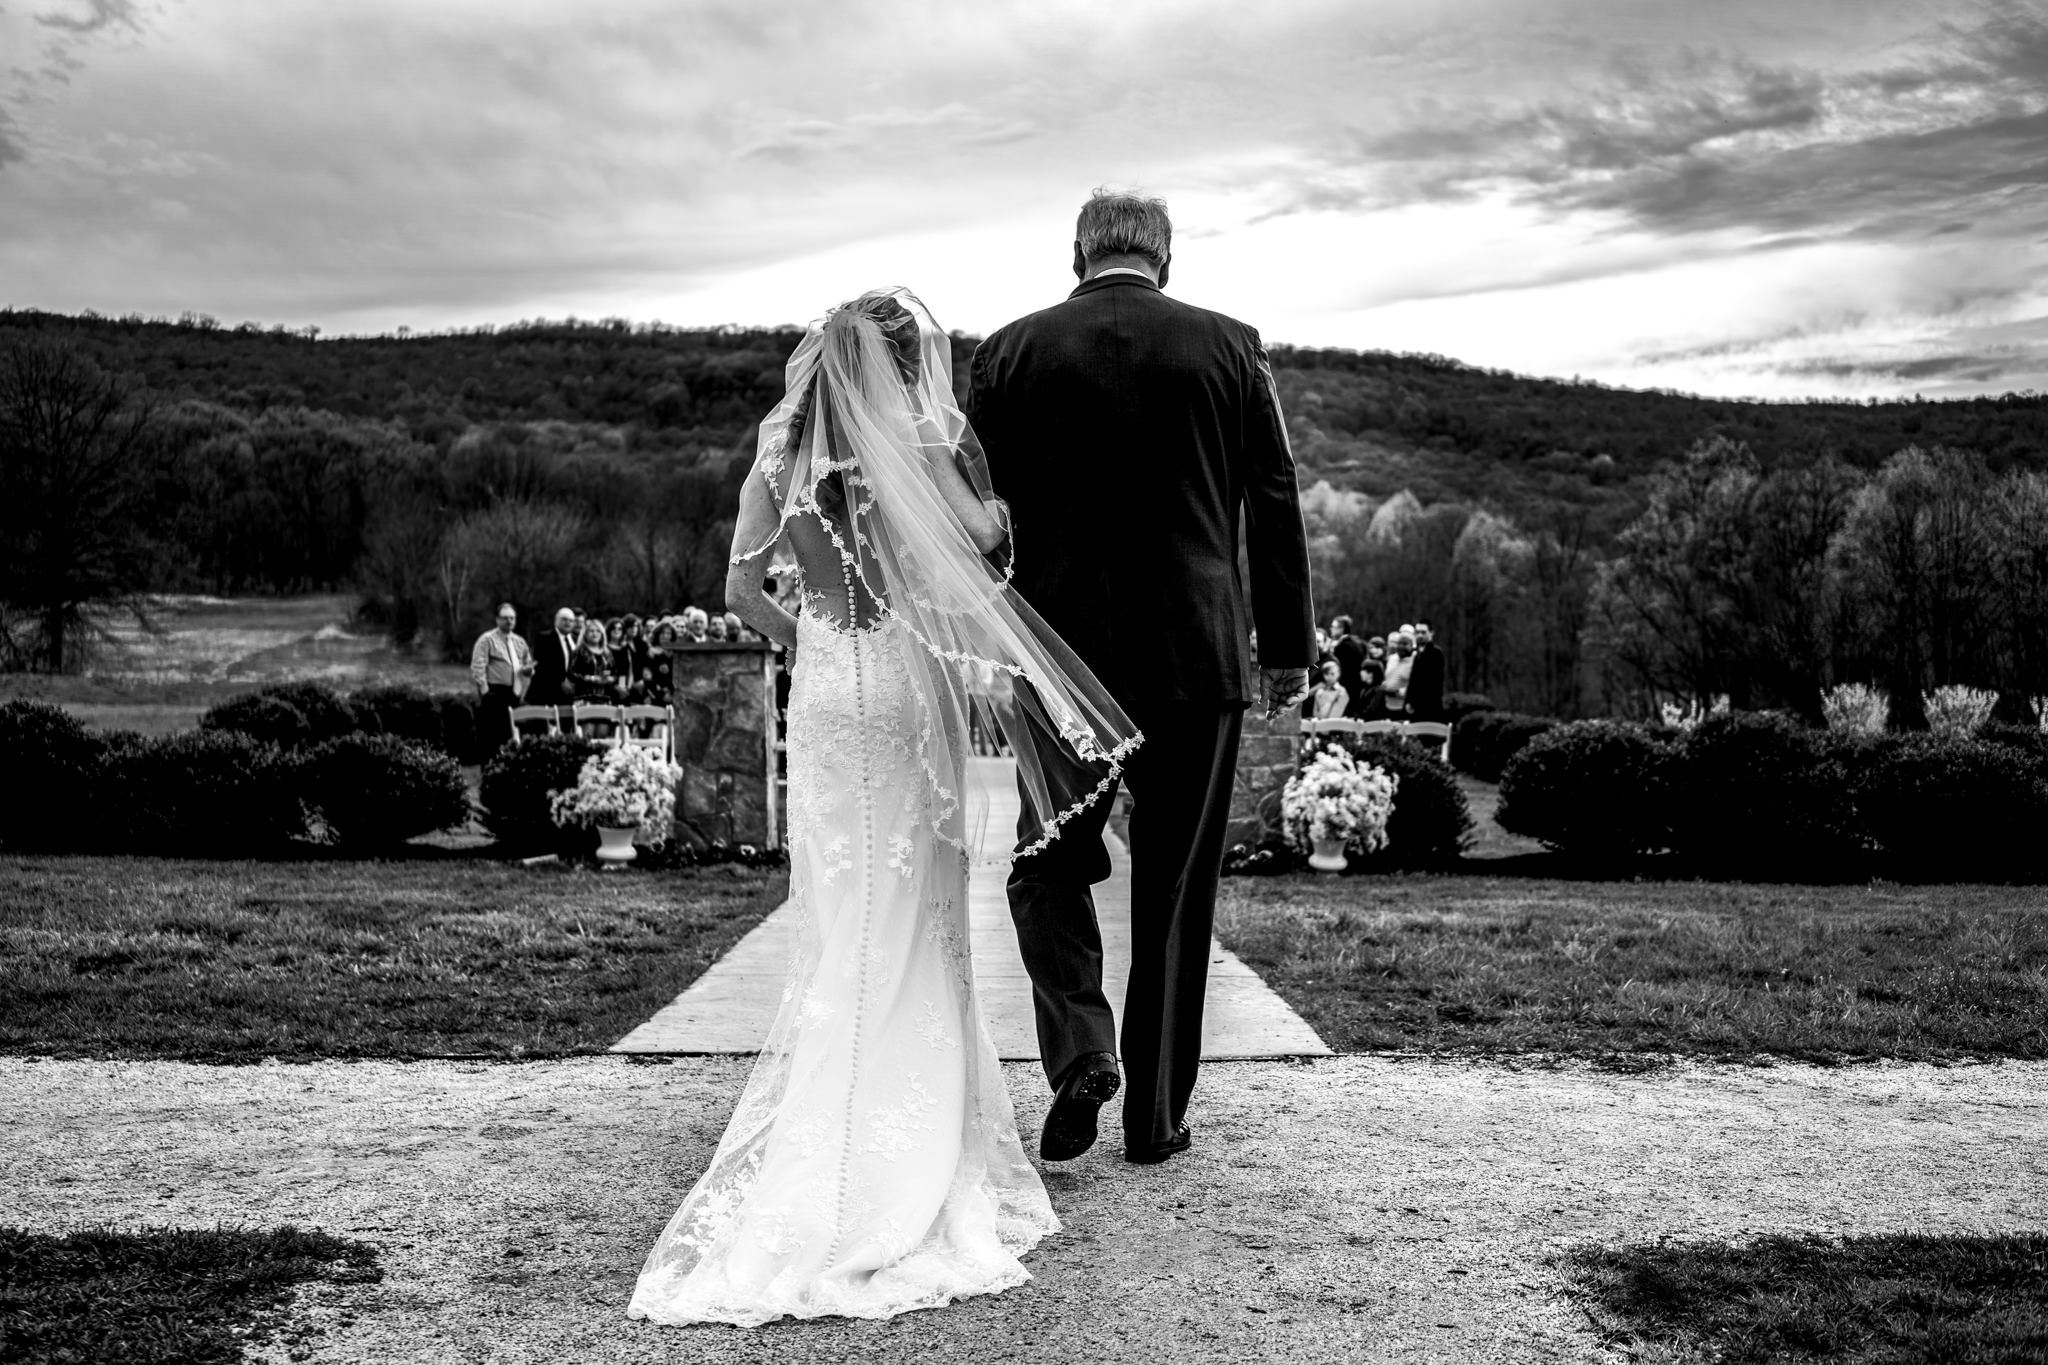 Springfield Manor Winery and Distillery Thornton MD Spring Wedding Photography by Bee Two Sweet-8.jpg